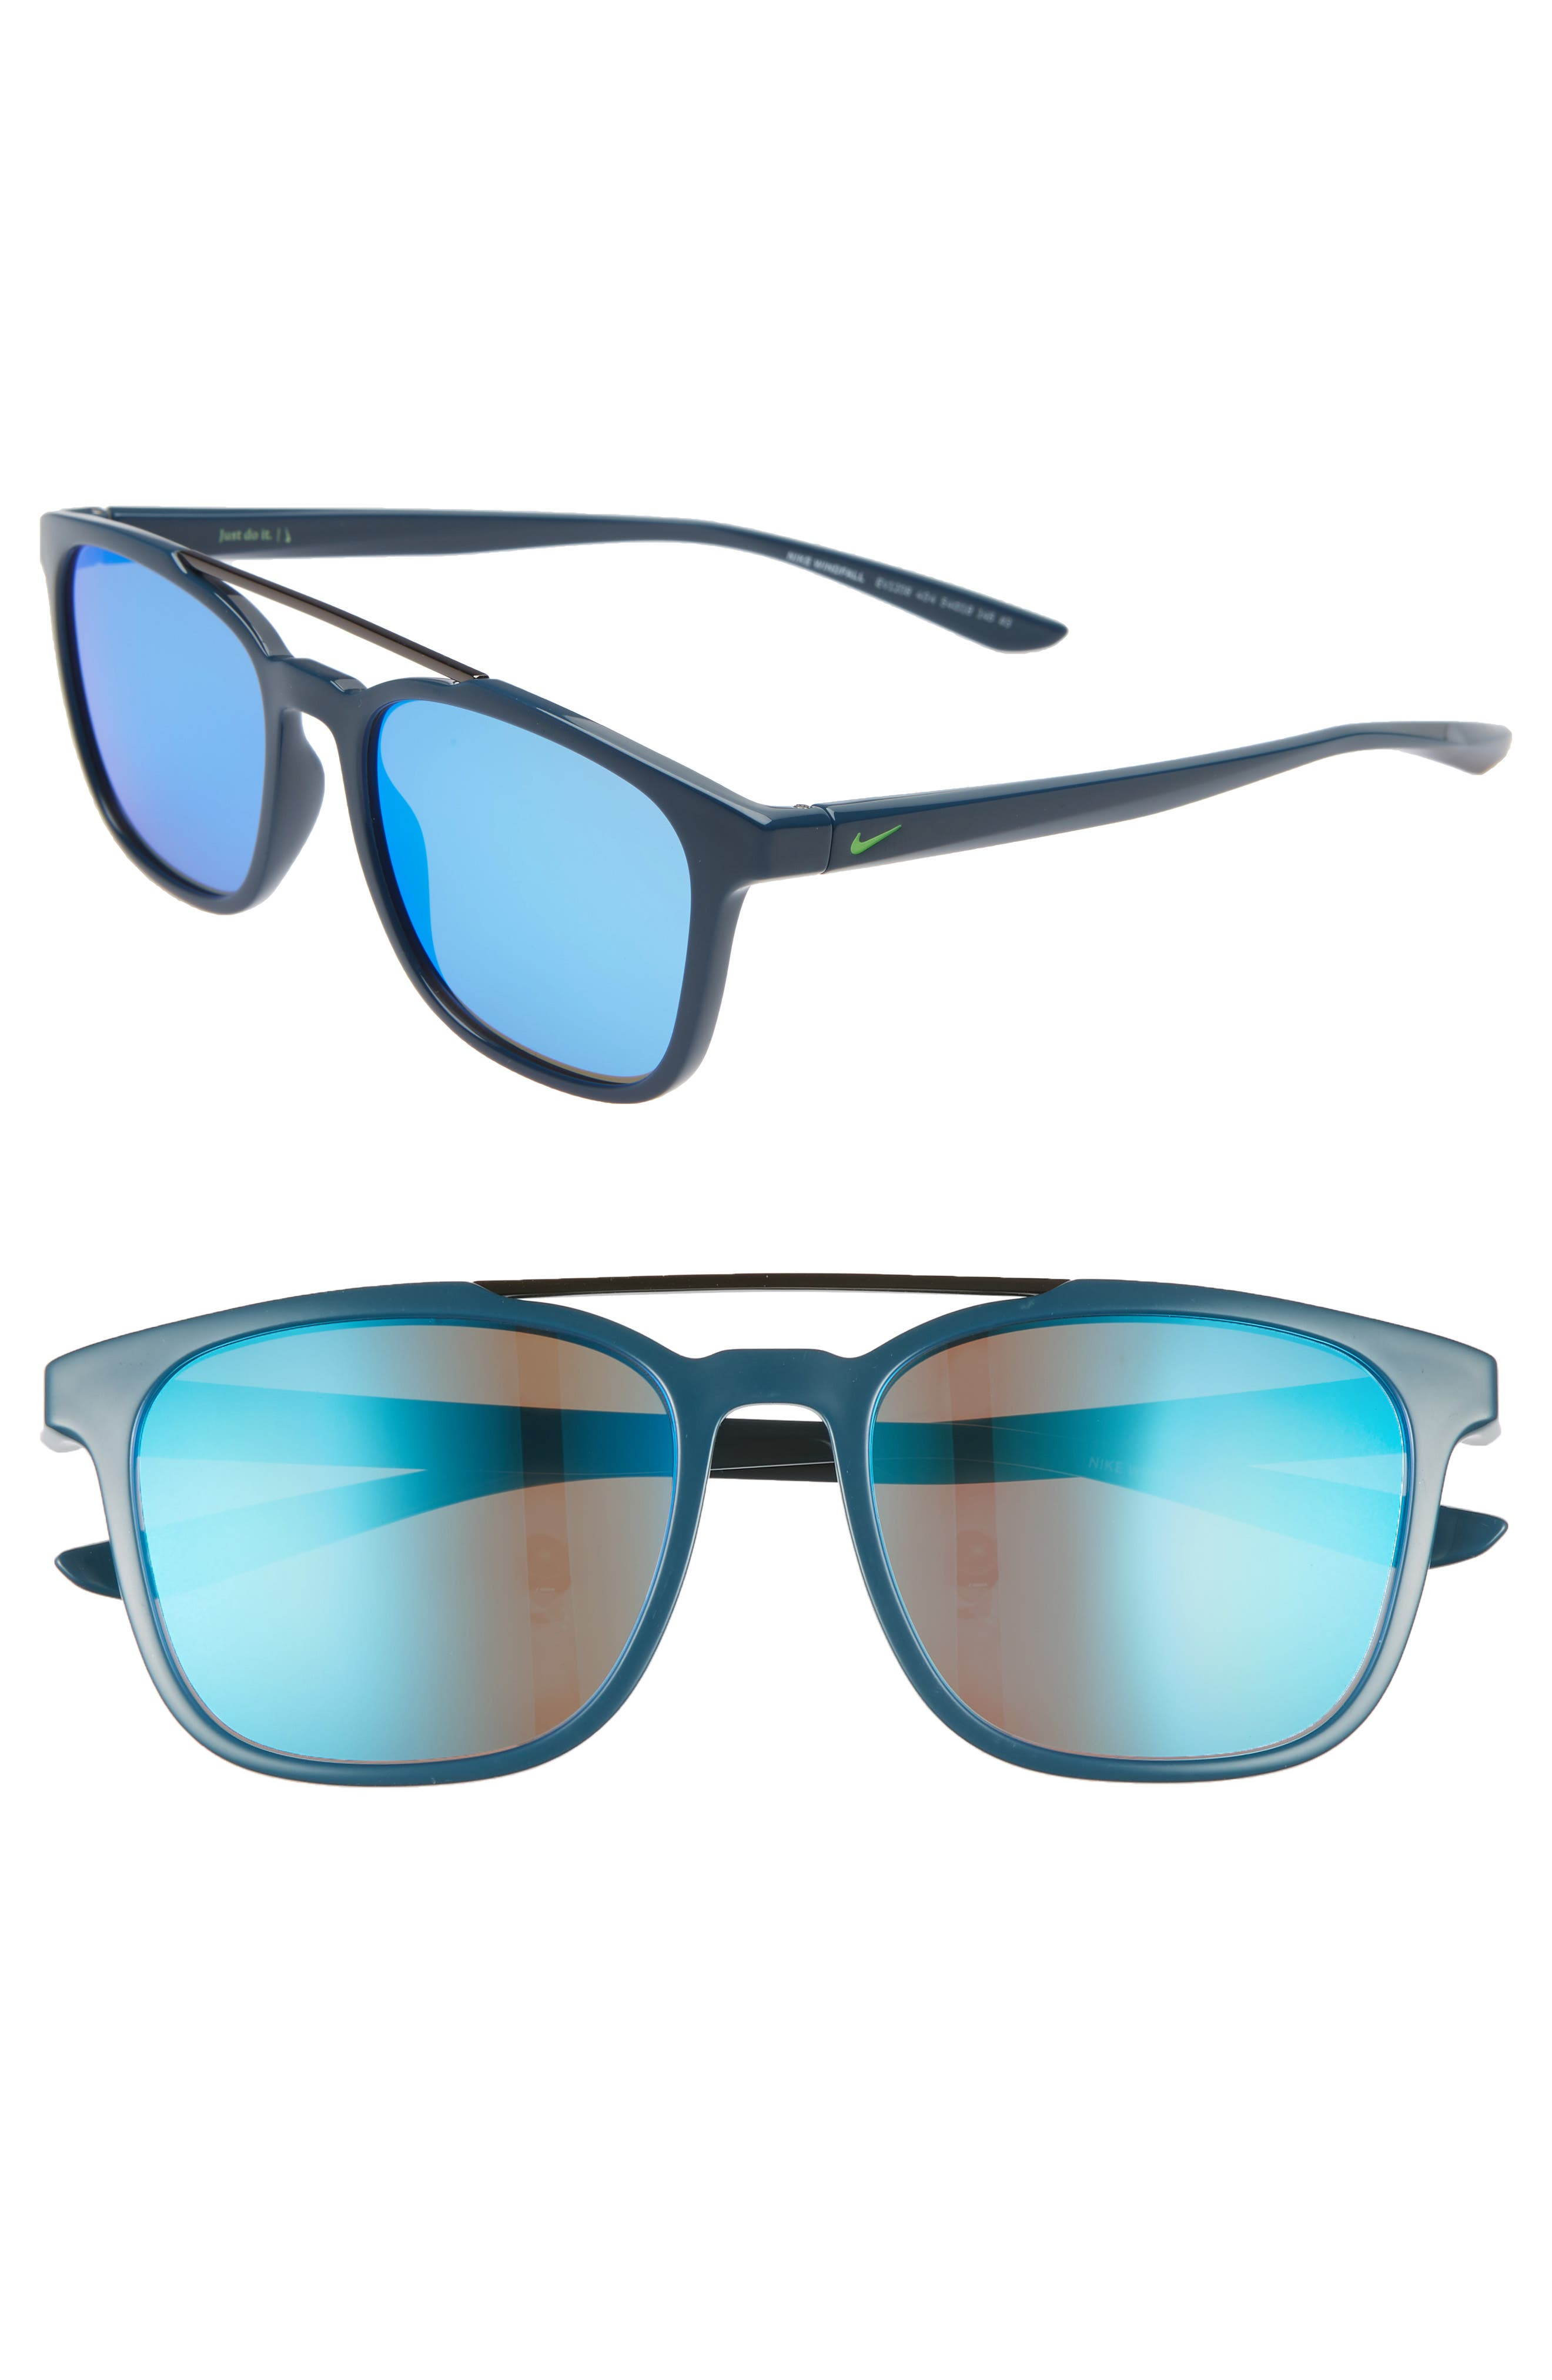 Nike Windfall 5m Square Sunglasses - Space Blue/ Blue